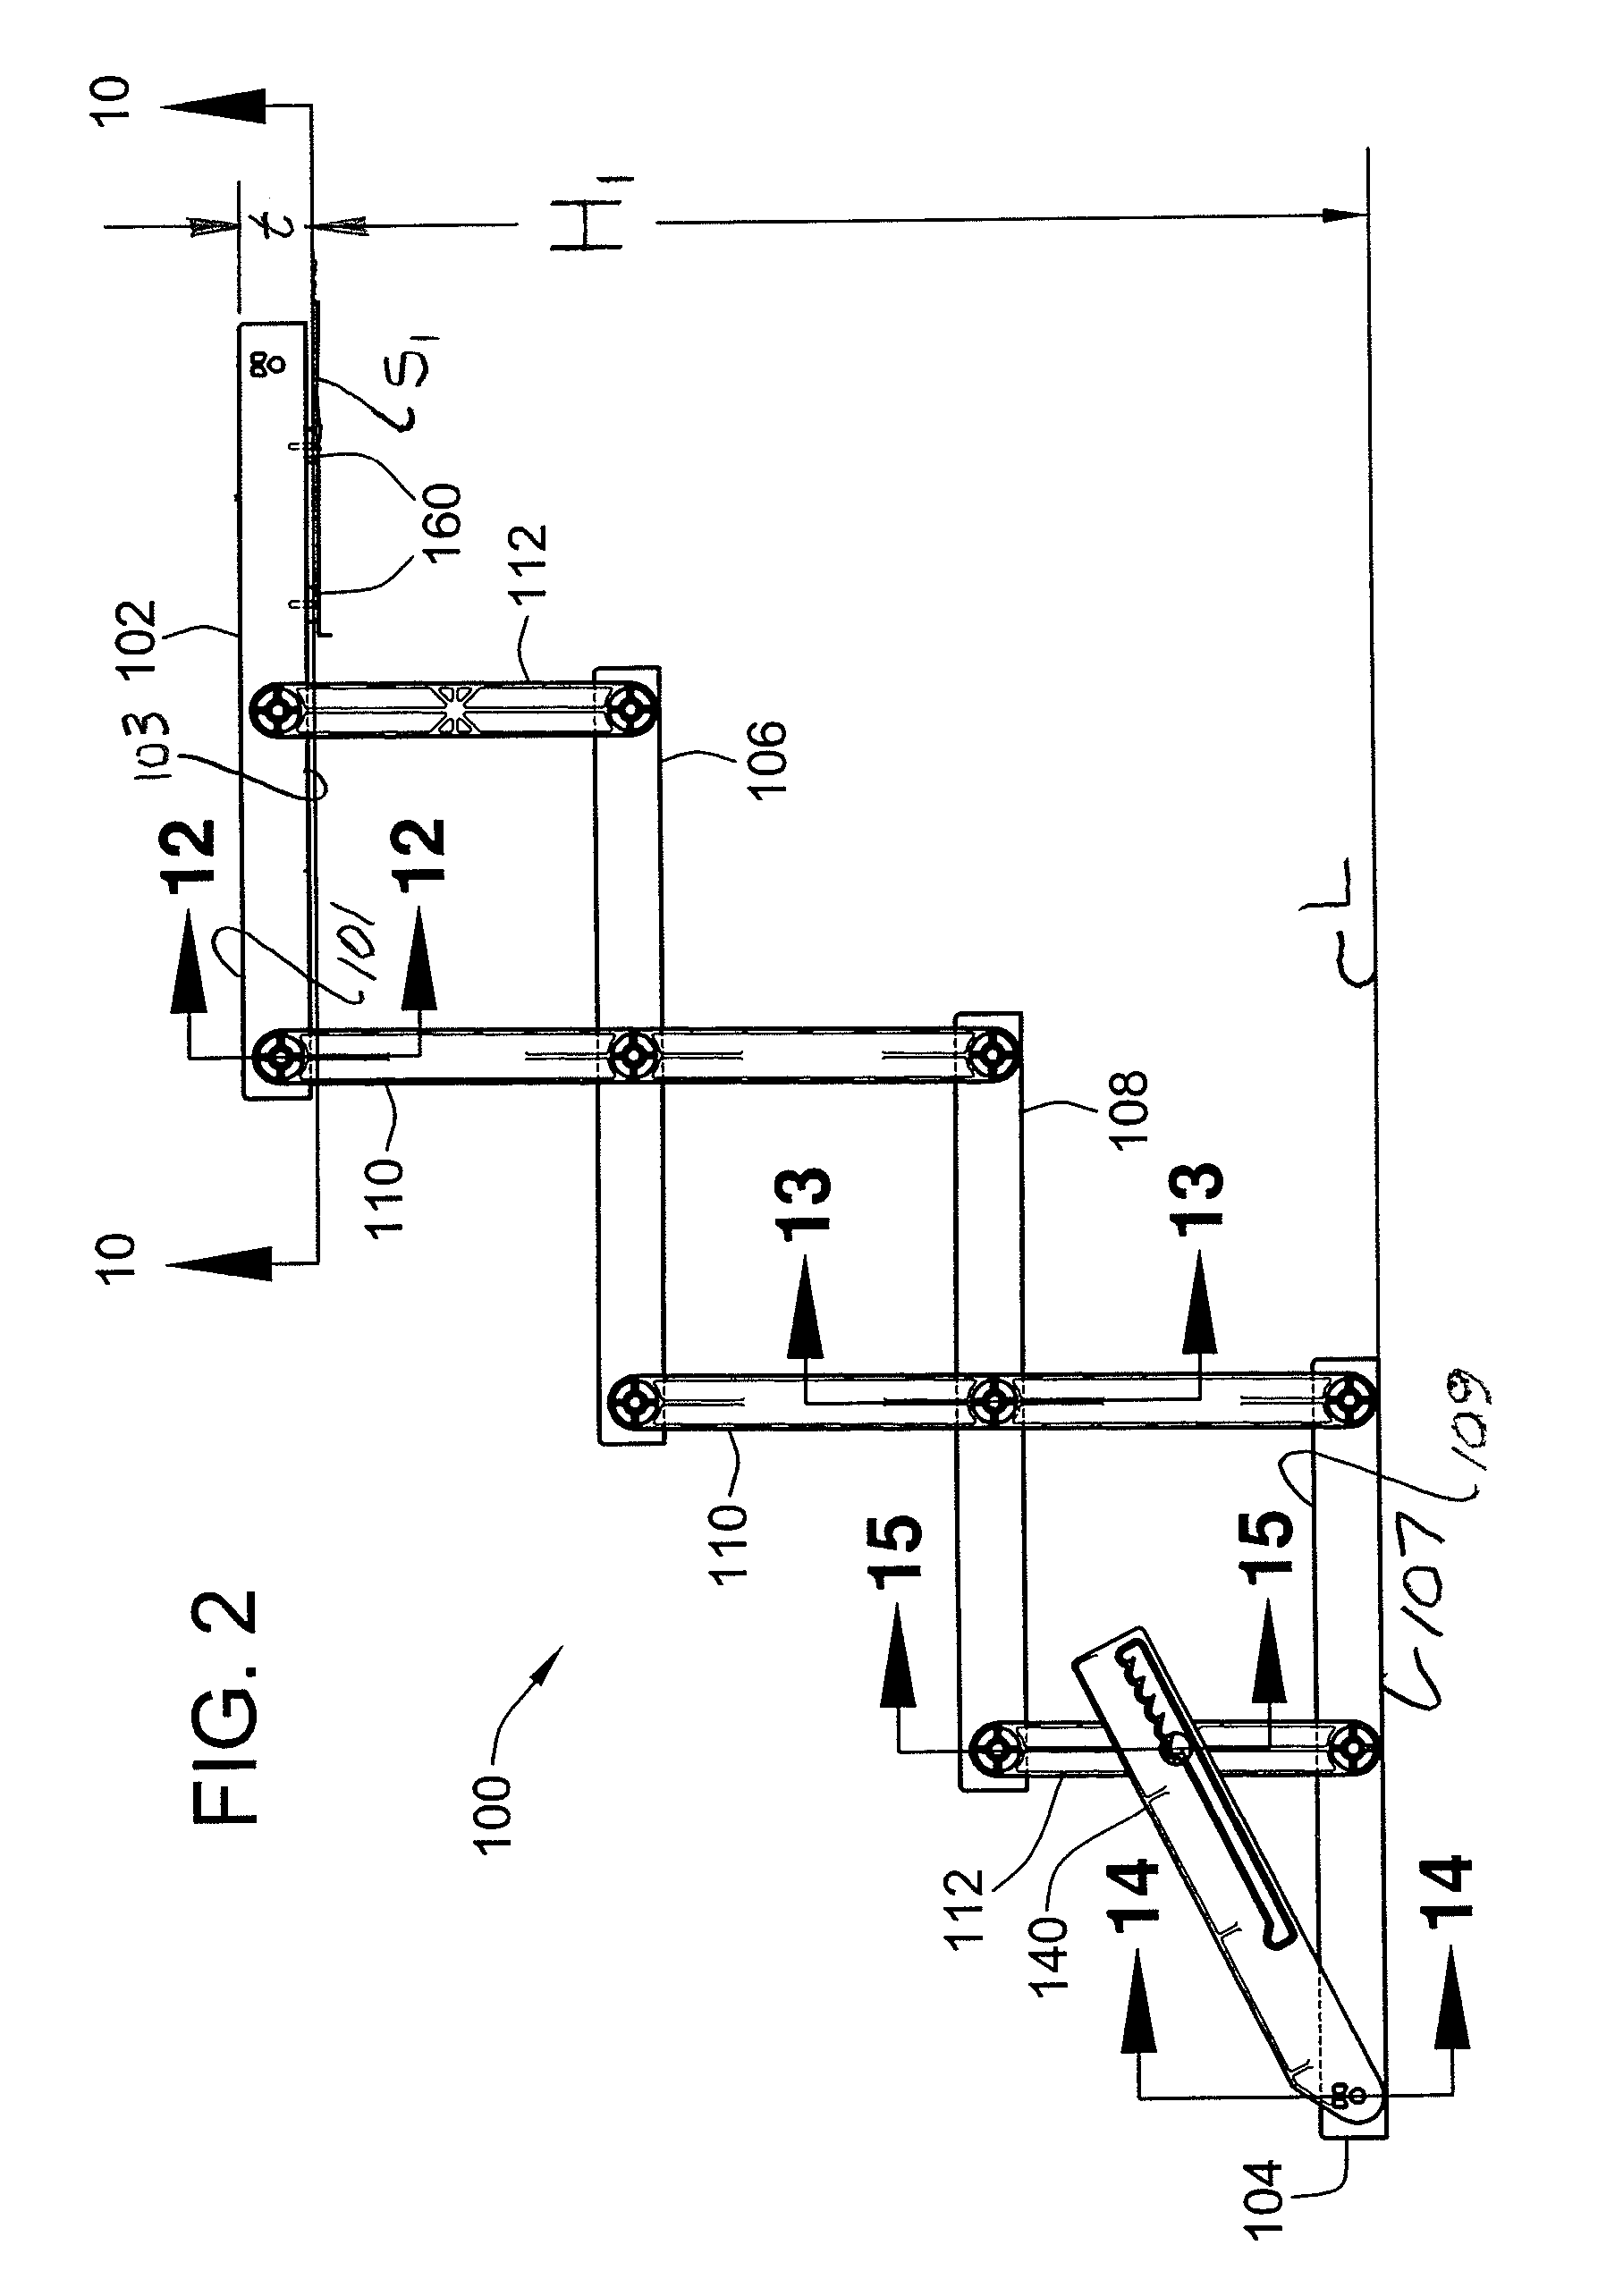 Folding Staircase Patent Us8091294 Folding Pet Staircase Google Patents